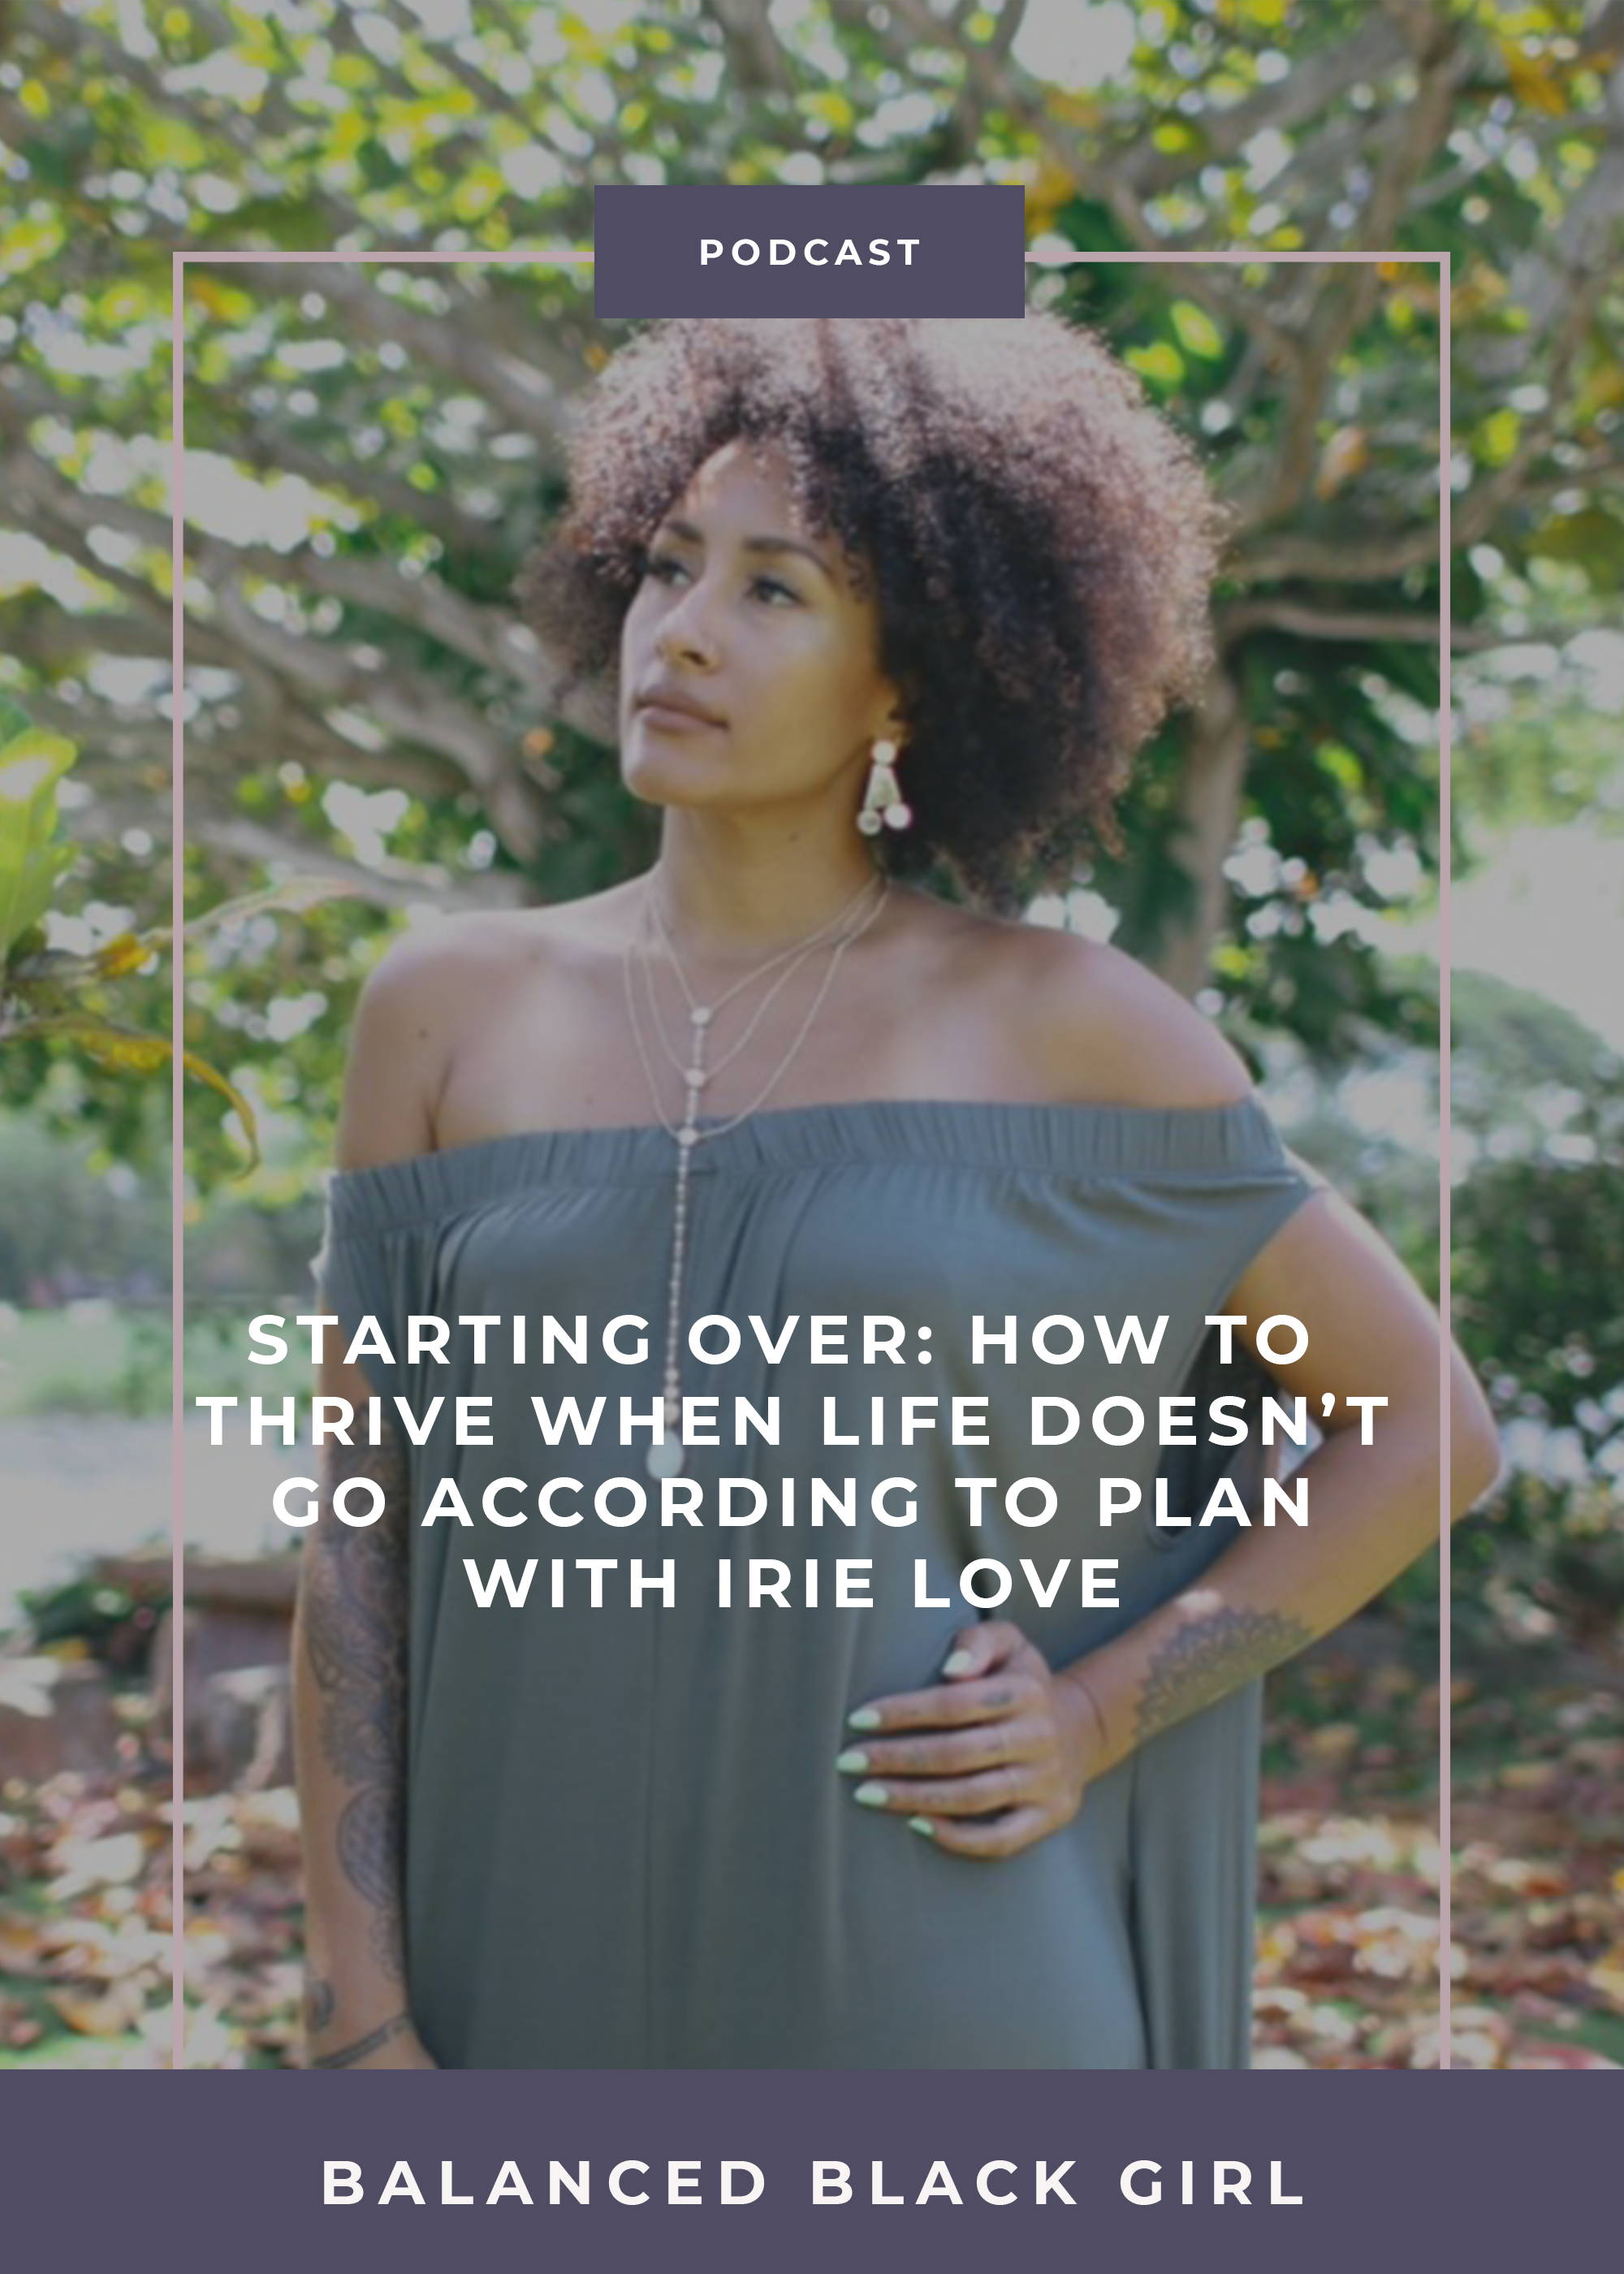 In this episode of the Balanced Black Girl Podcast, we are talking about tackling life transitions and starting over with Irie Love, singer and fitness instructor.